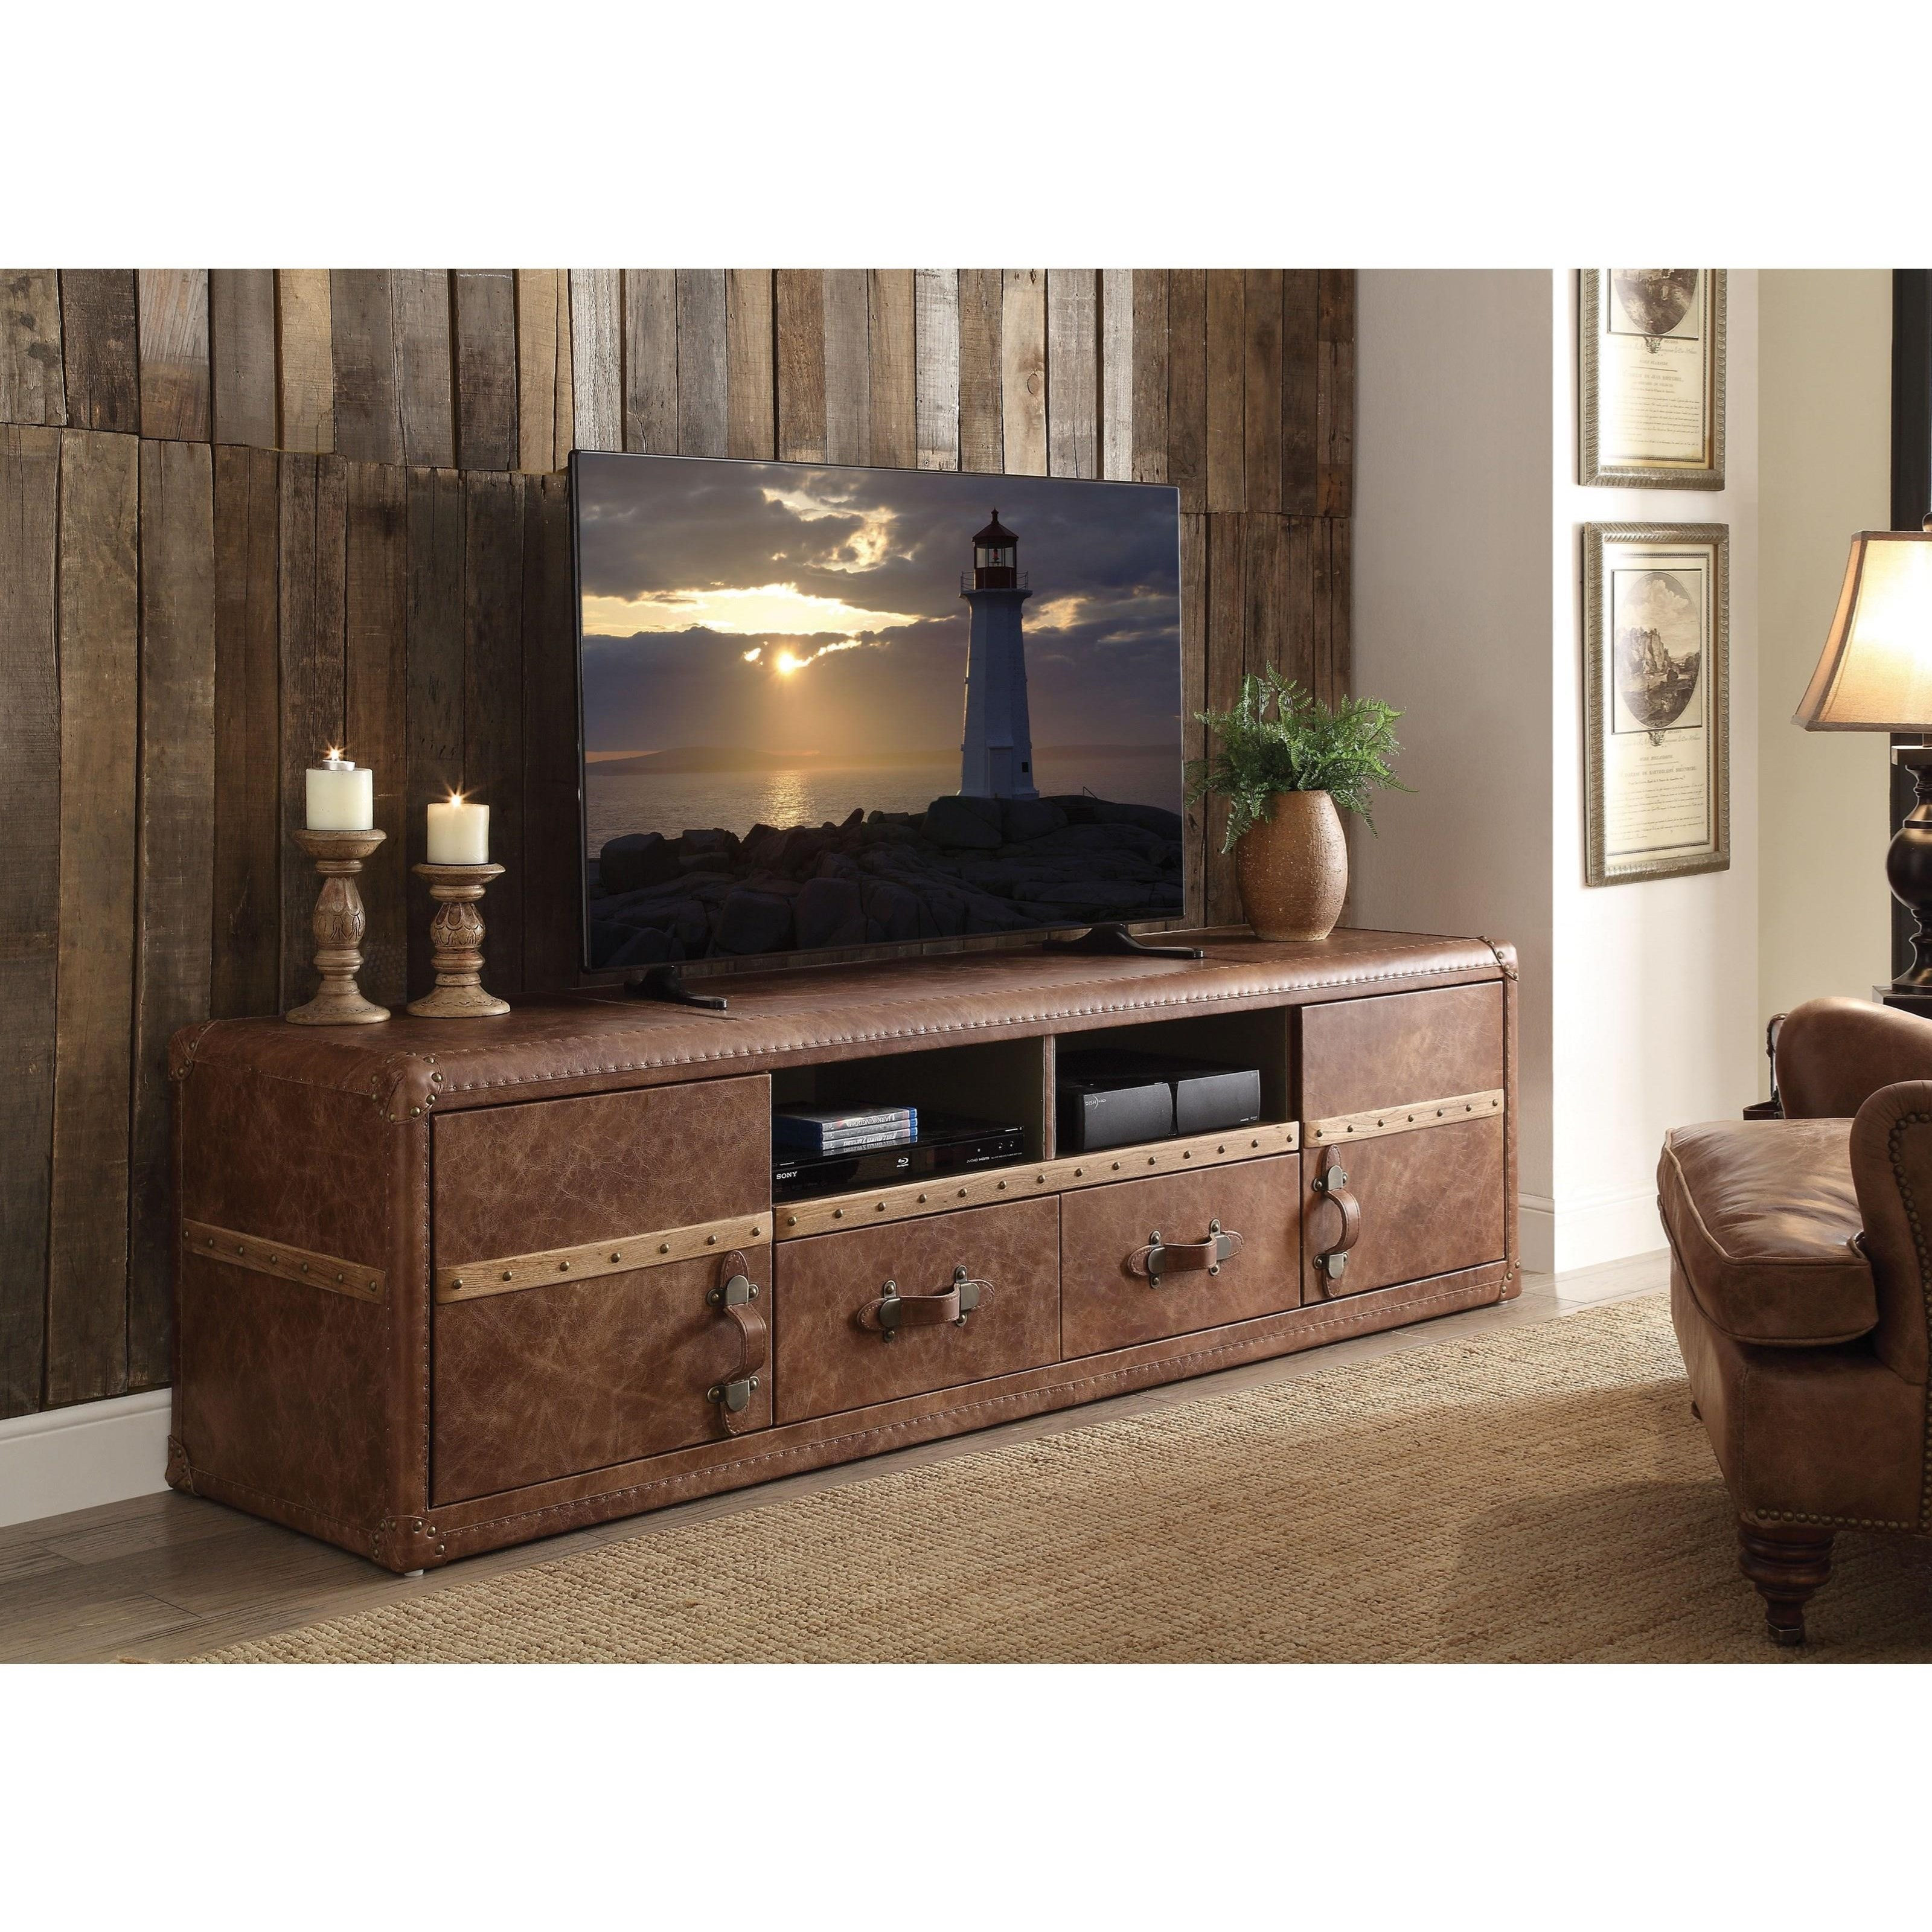 Aberdeen TV Stand by Acme Furniture at Carolina Direct